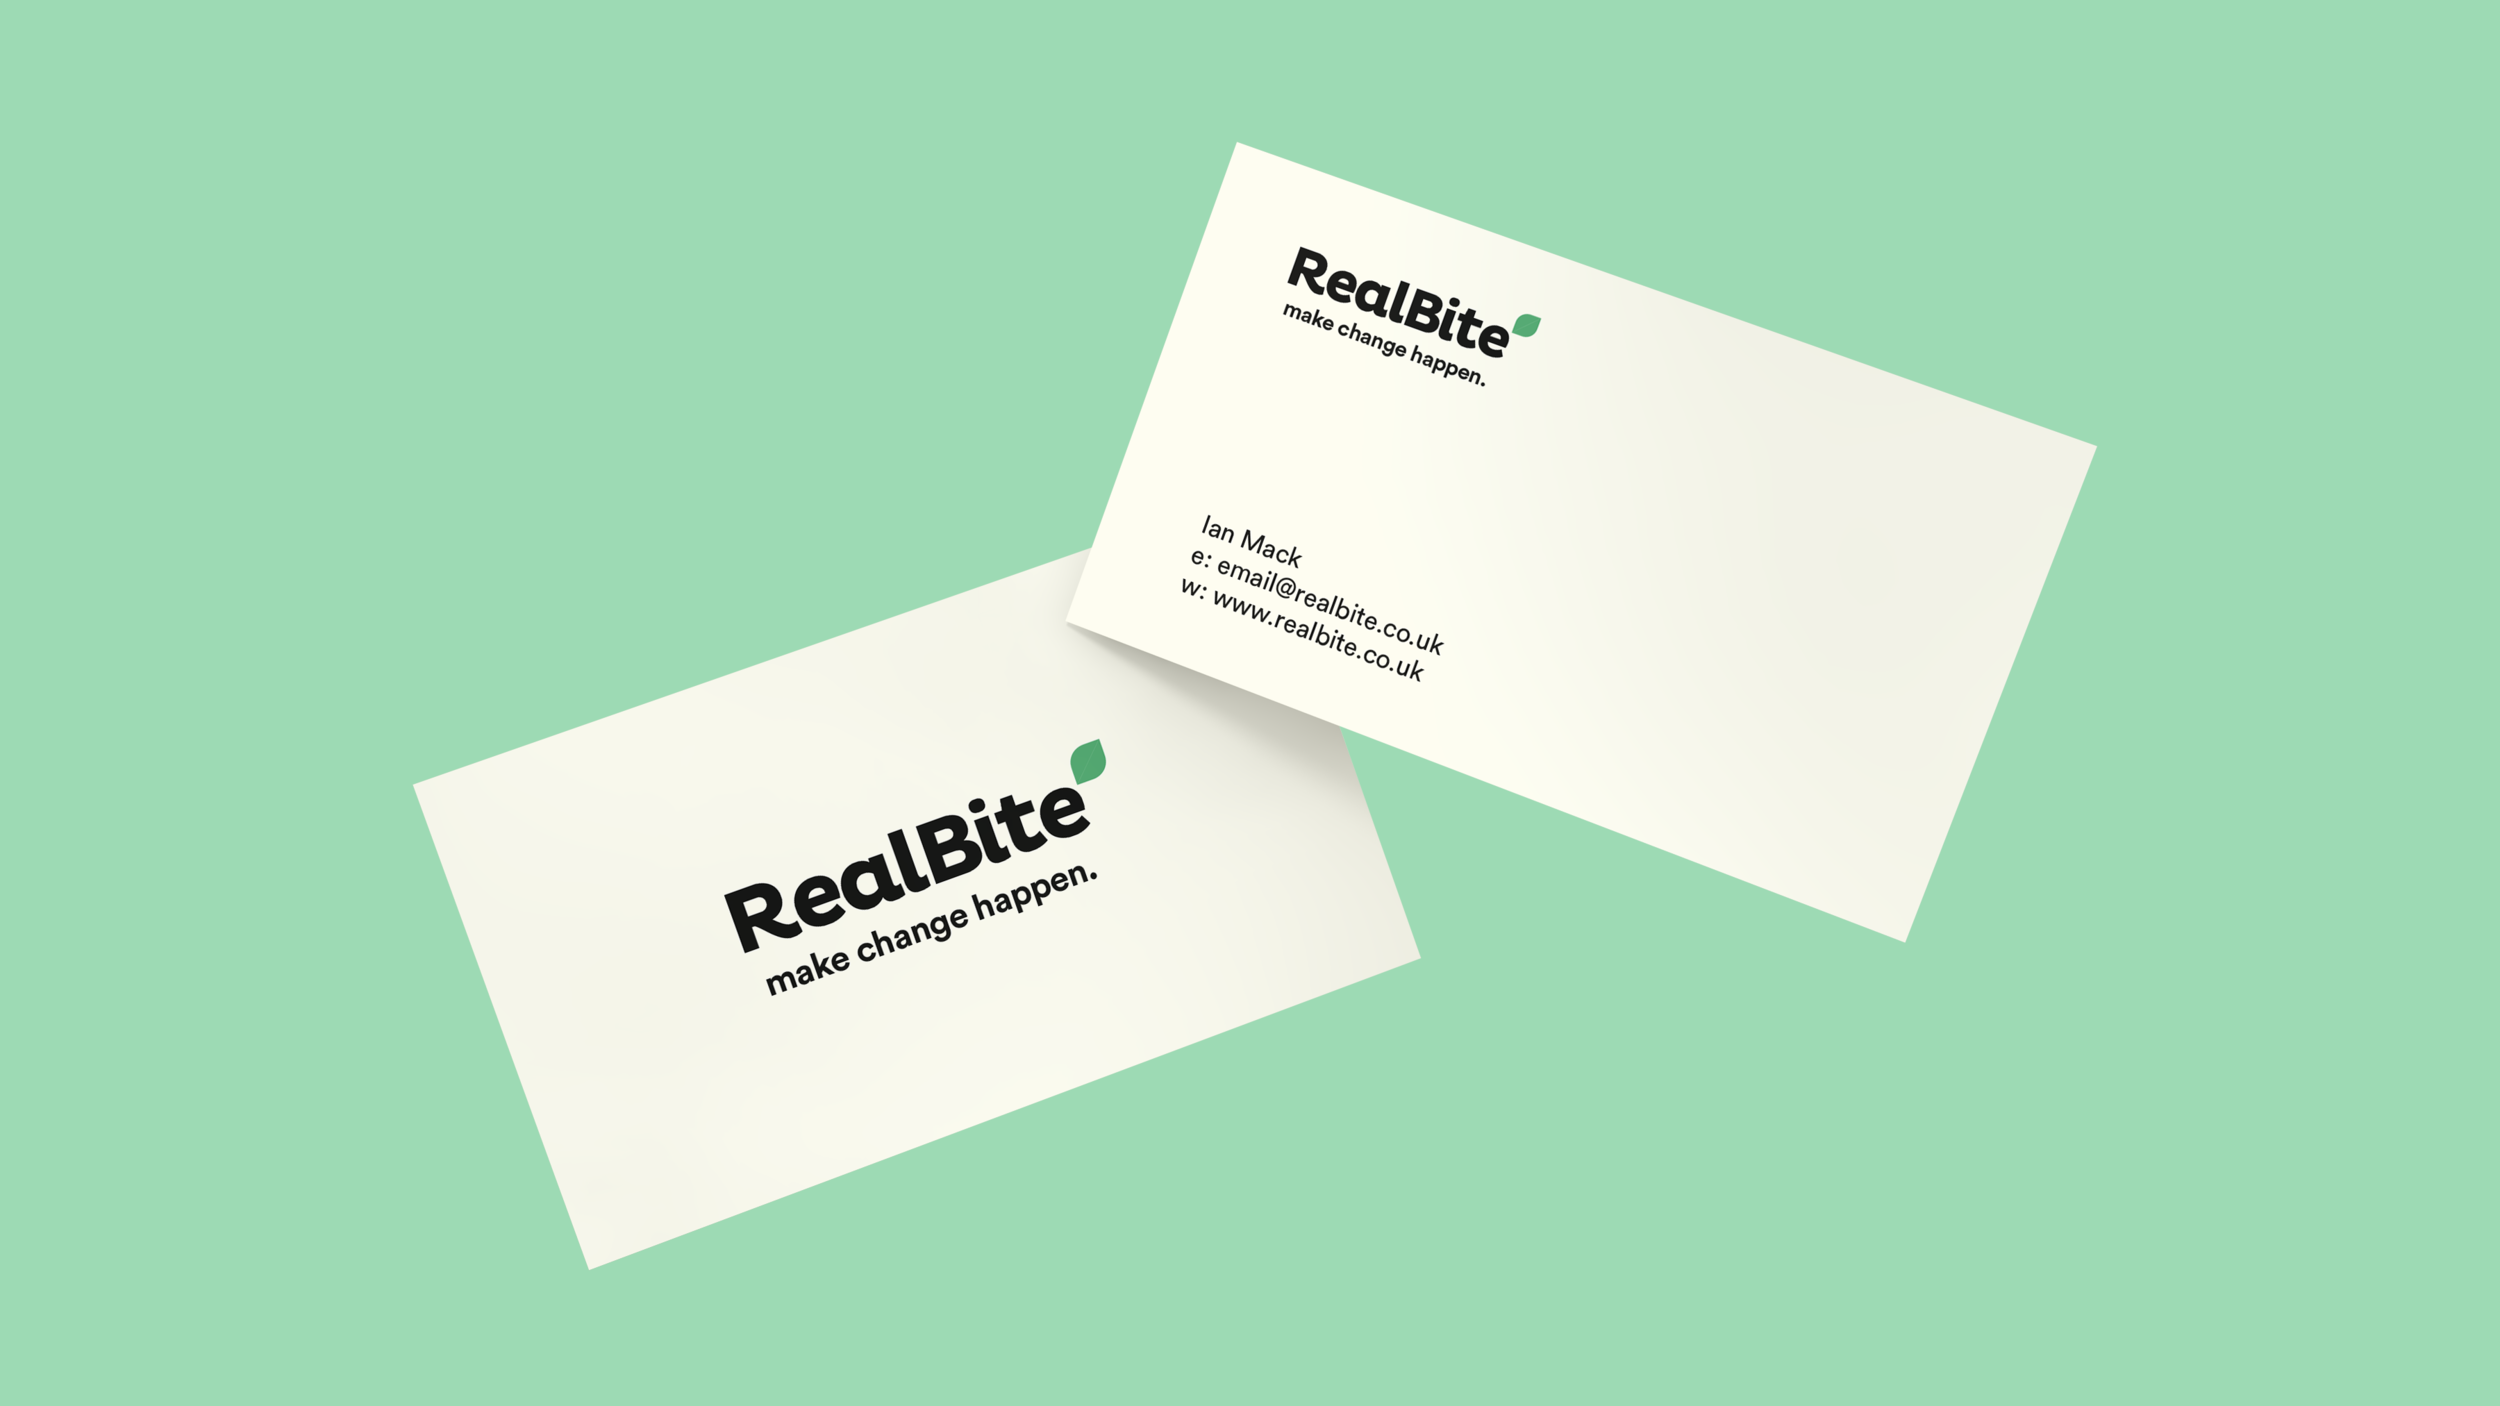 Realbite branding and packaging 2.png